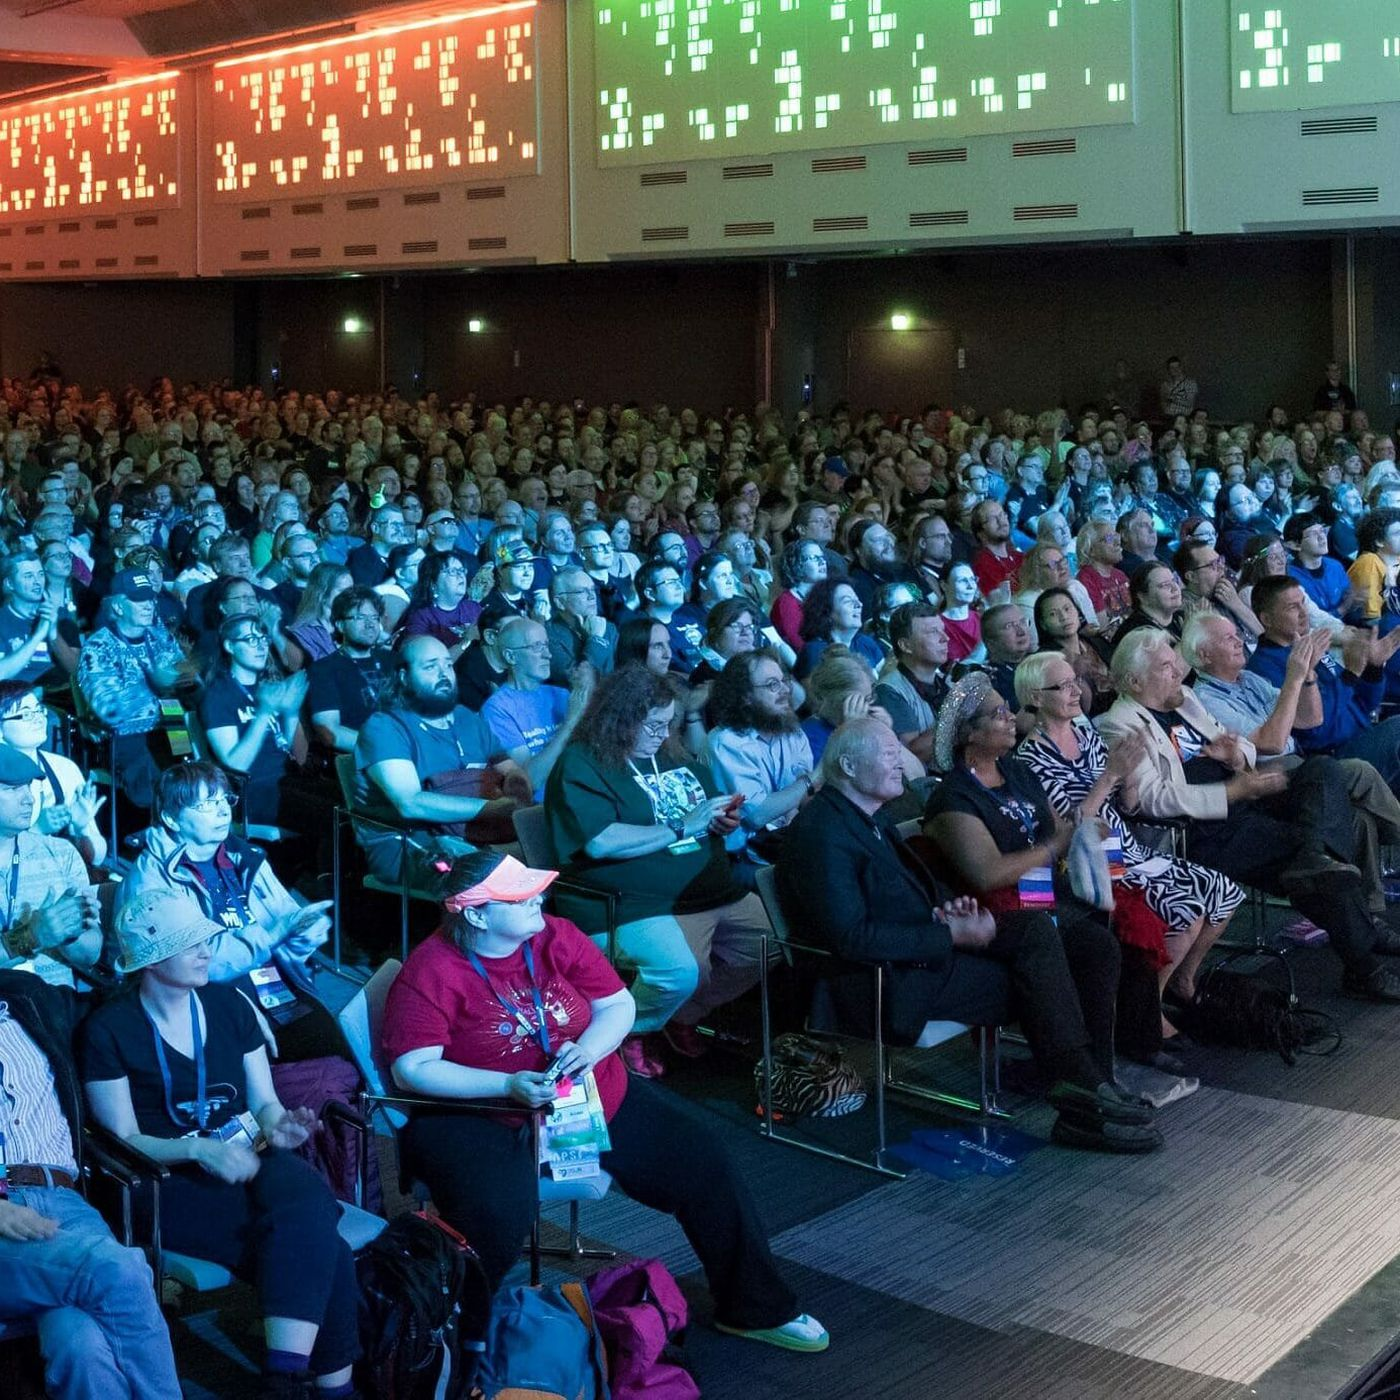 Sci-fi convention Worldcon reorganizes its programming amid